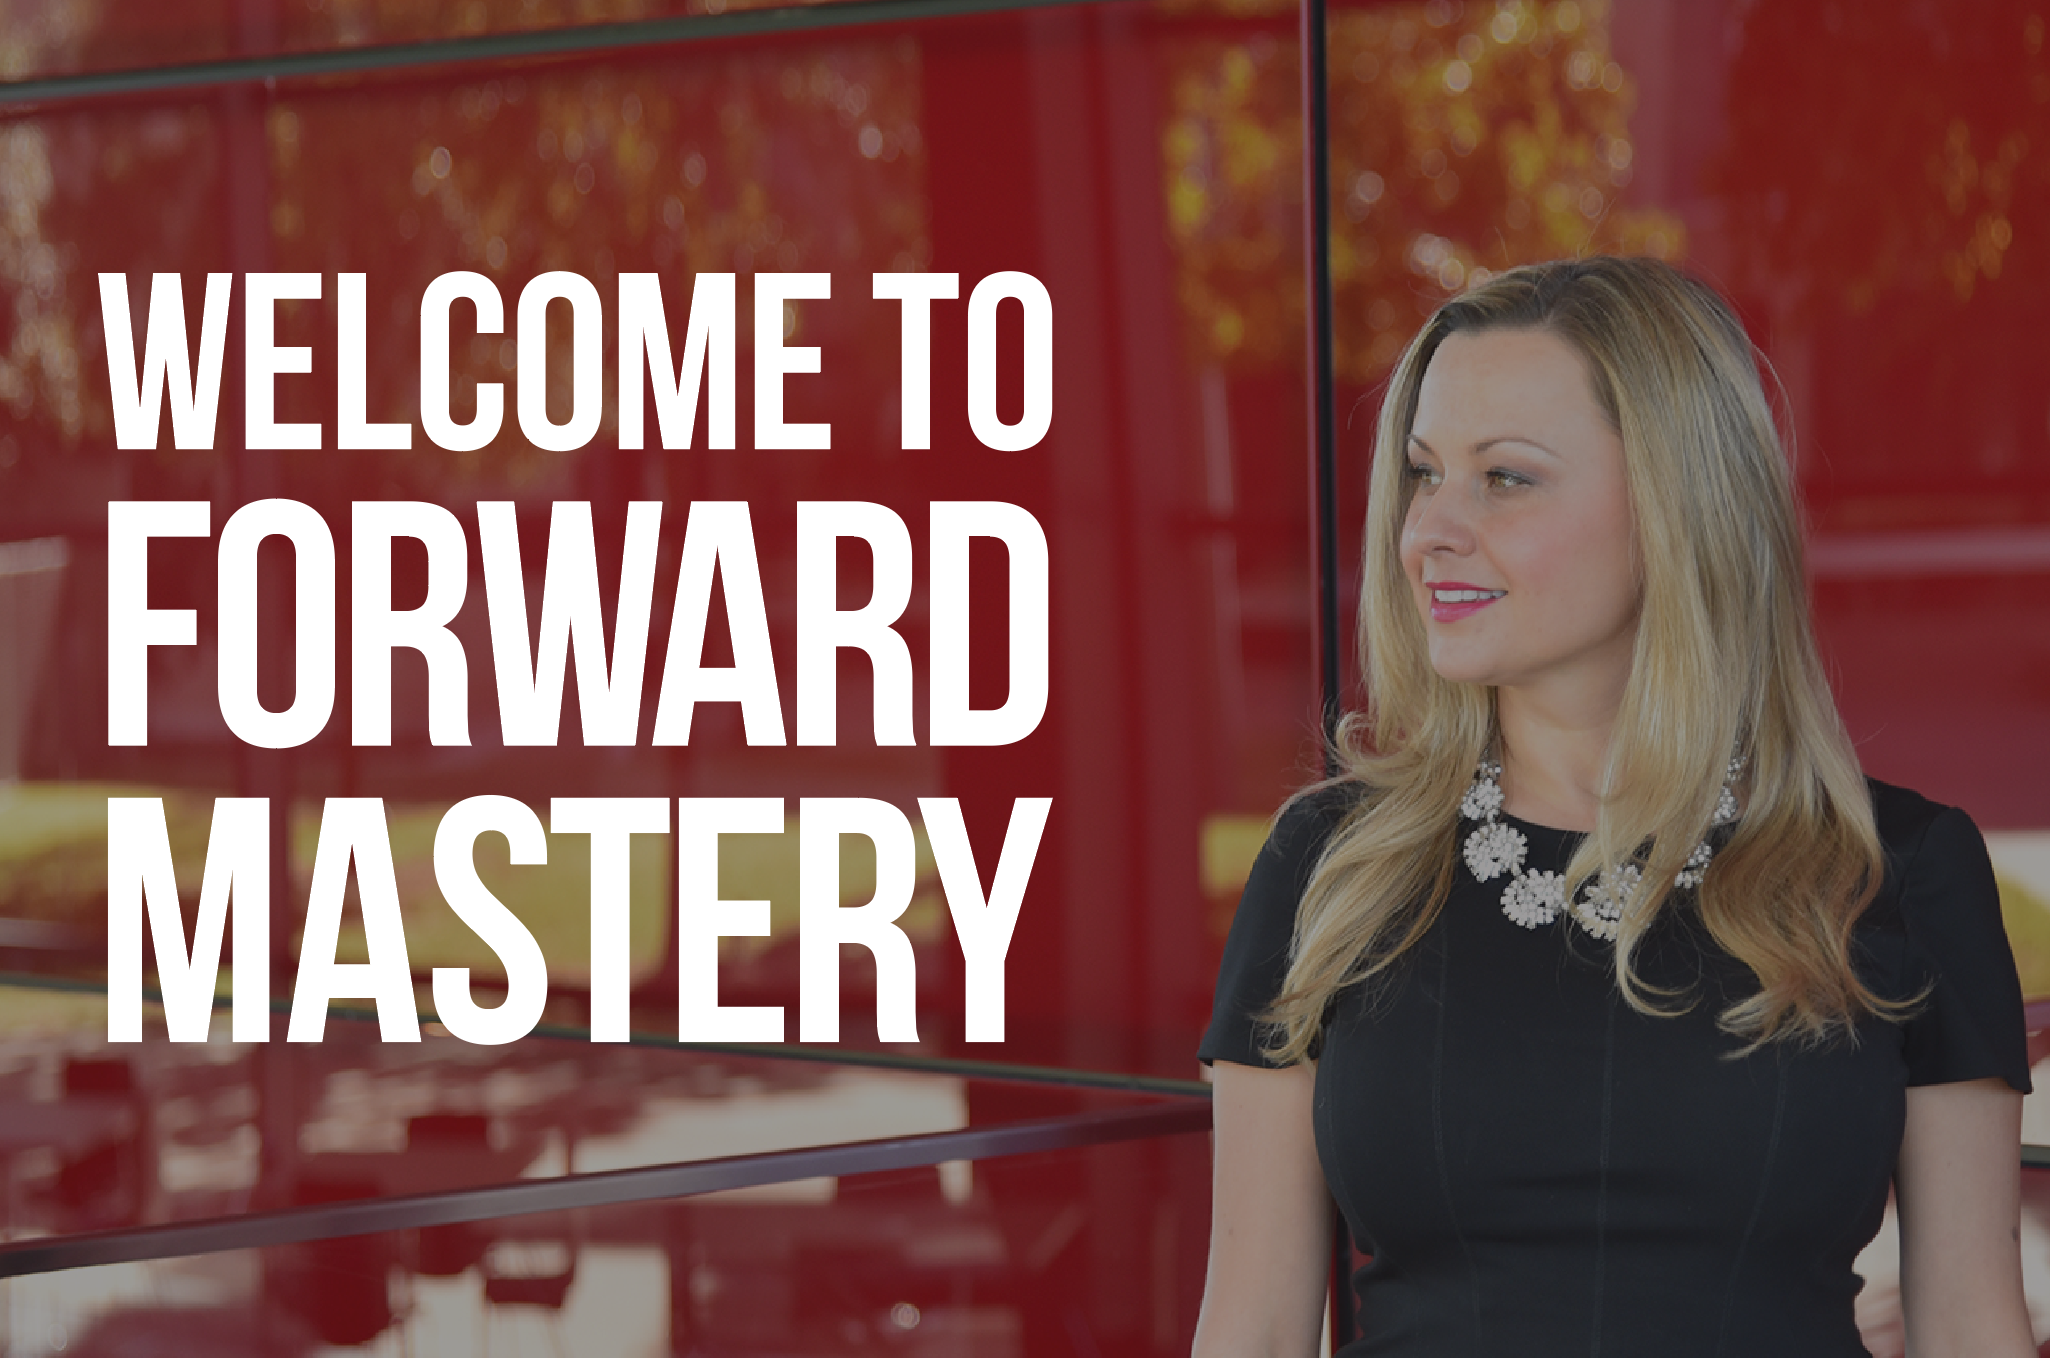 WELCOME TO FORWARD MASTERY